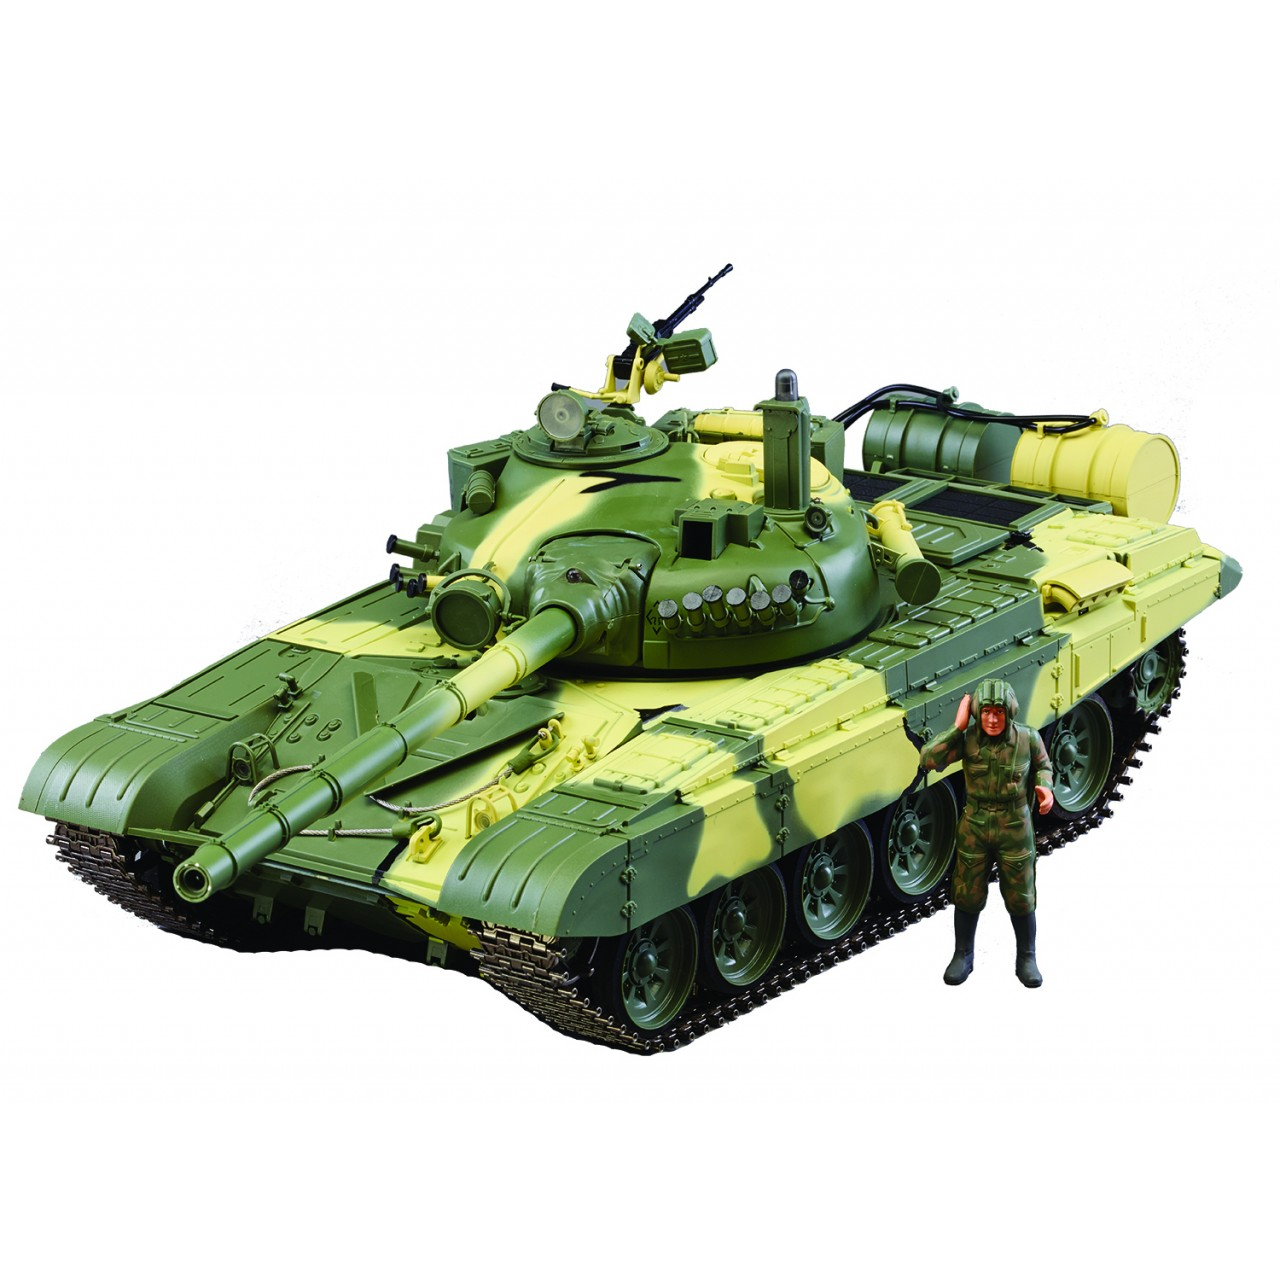 rc military planes with Build The Russian Tank T72 Full Kit on Build The Rms Titanic Lifeboat besides Jet further Build The Thunderbird 2 in addition Plane besides Build The R2 D2.